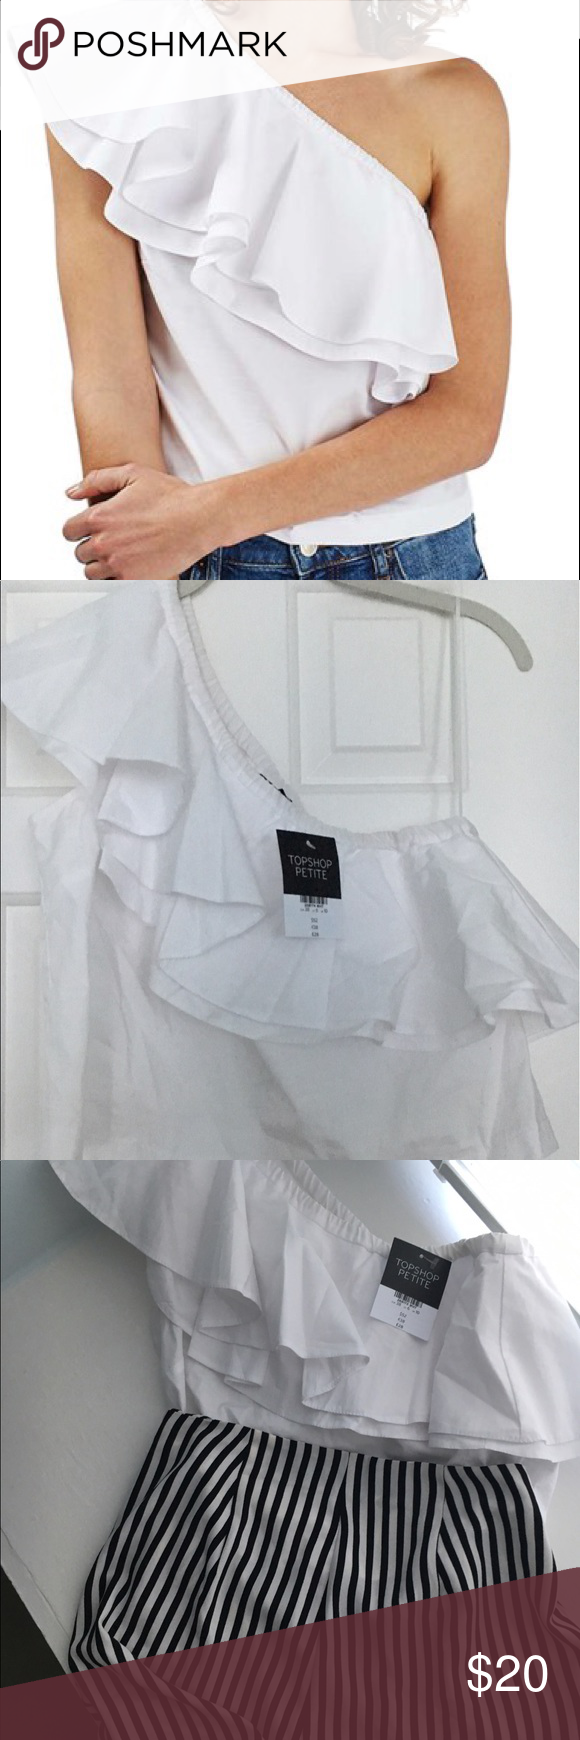 66c7d0697a522 Topshop Poplin Ruffle One-Shoulder Top NWT Purchased on Nordstrom. NWT.  Perfect pairing with shorts in third photo (also selling!) Topshop PETITE  Tops Crop ...